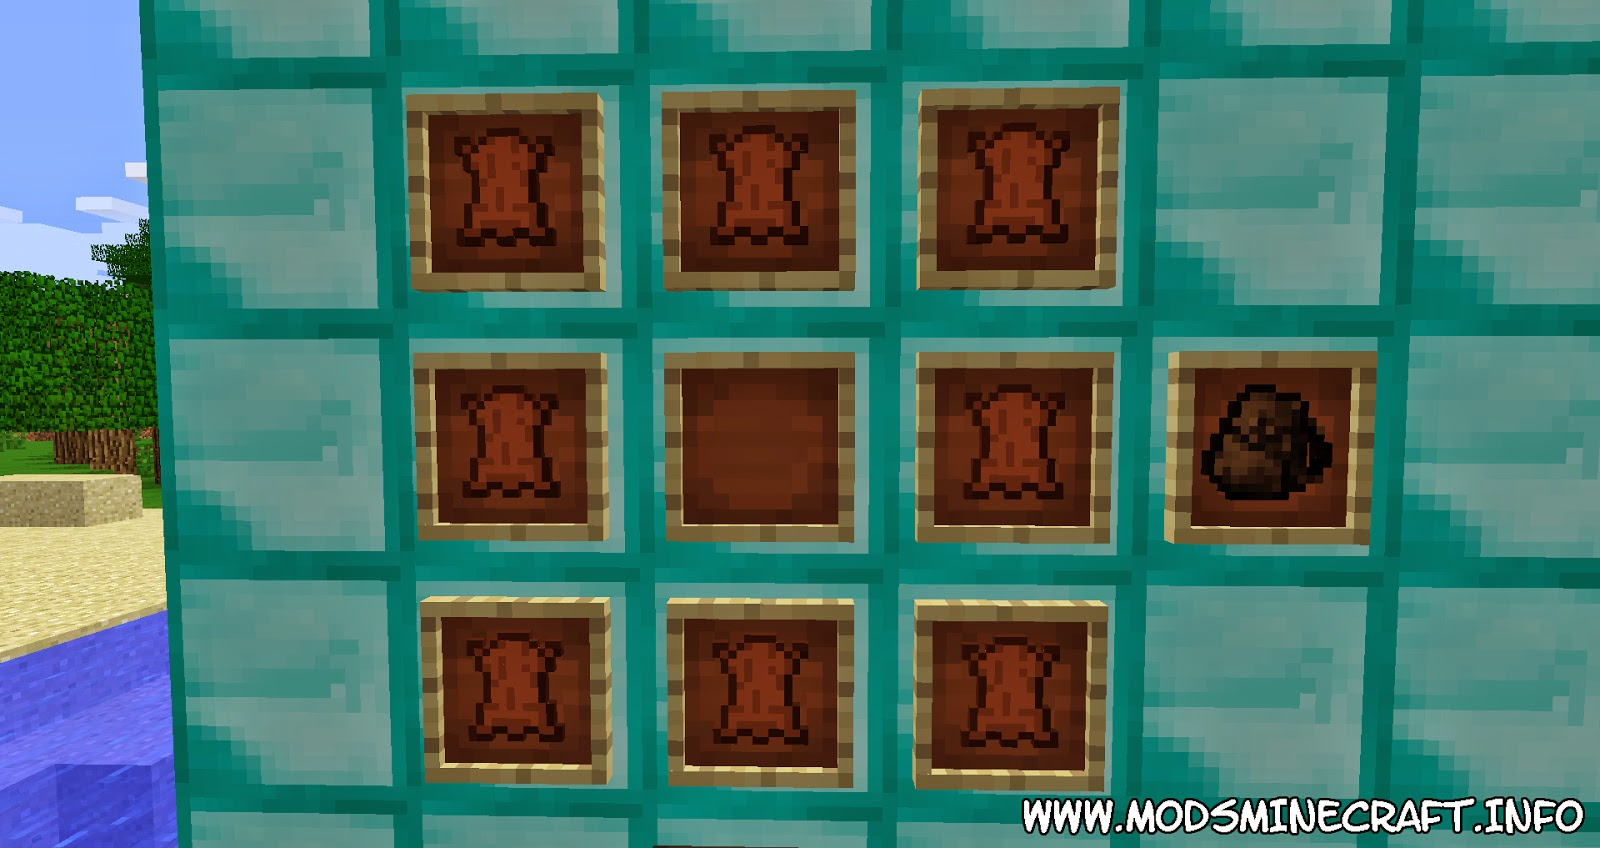 Backpacks Mod 1.7.10, Backpacks Mod para Minecraft 1.7.2, backpacks 1.7.2, descargar backpacks 1.7.2, minecraft backpacks, minecraft backpacks 1.7.2, minecraft mods, mods minecraft, descargar minecraft mods, minecraft descargar mods, cómo instalar mods de minecraft, minecraft cómo instalar mods, mods para minecraft